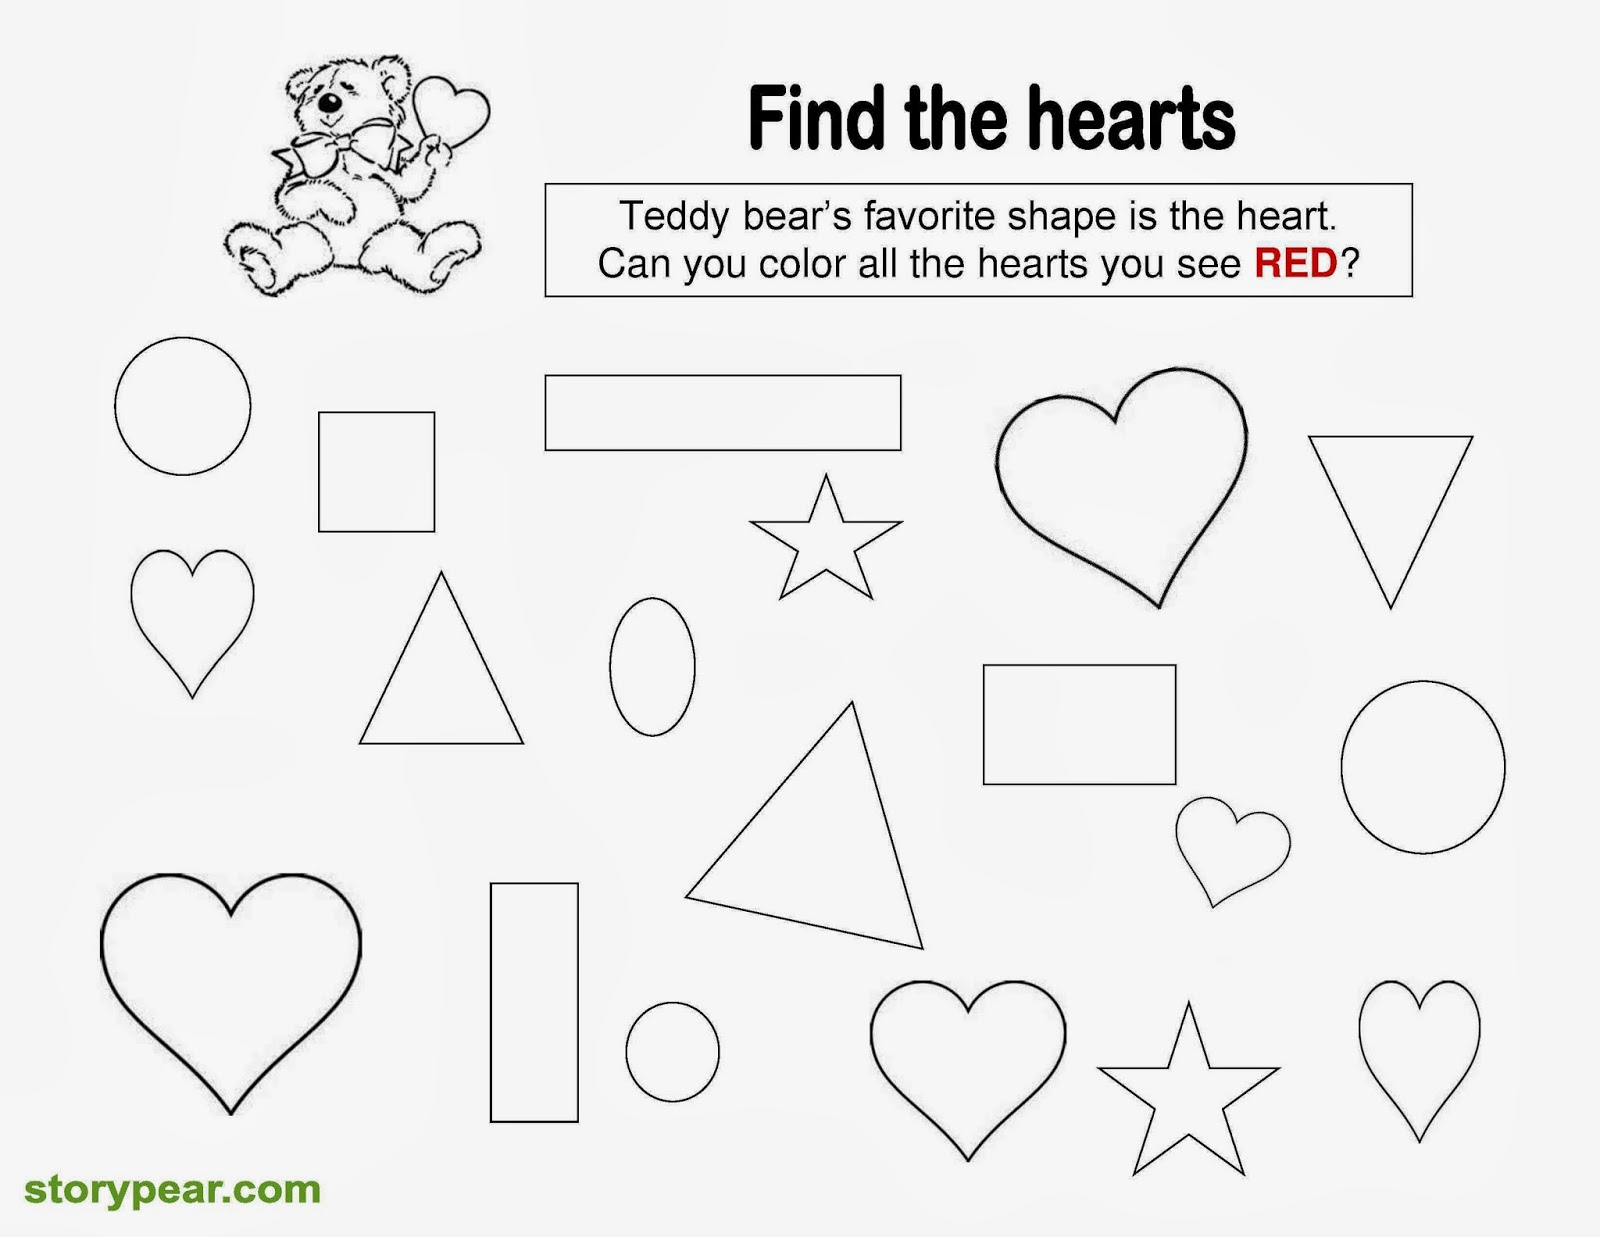 Worksheets Worksheet For Preschoolers story pear free valentine days printable sheets for preschoolers preschoolers